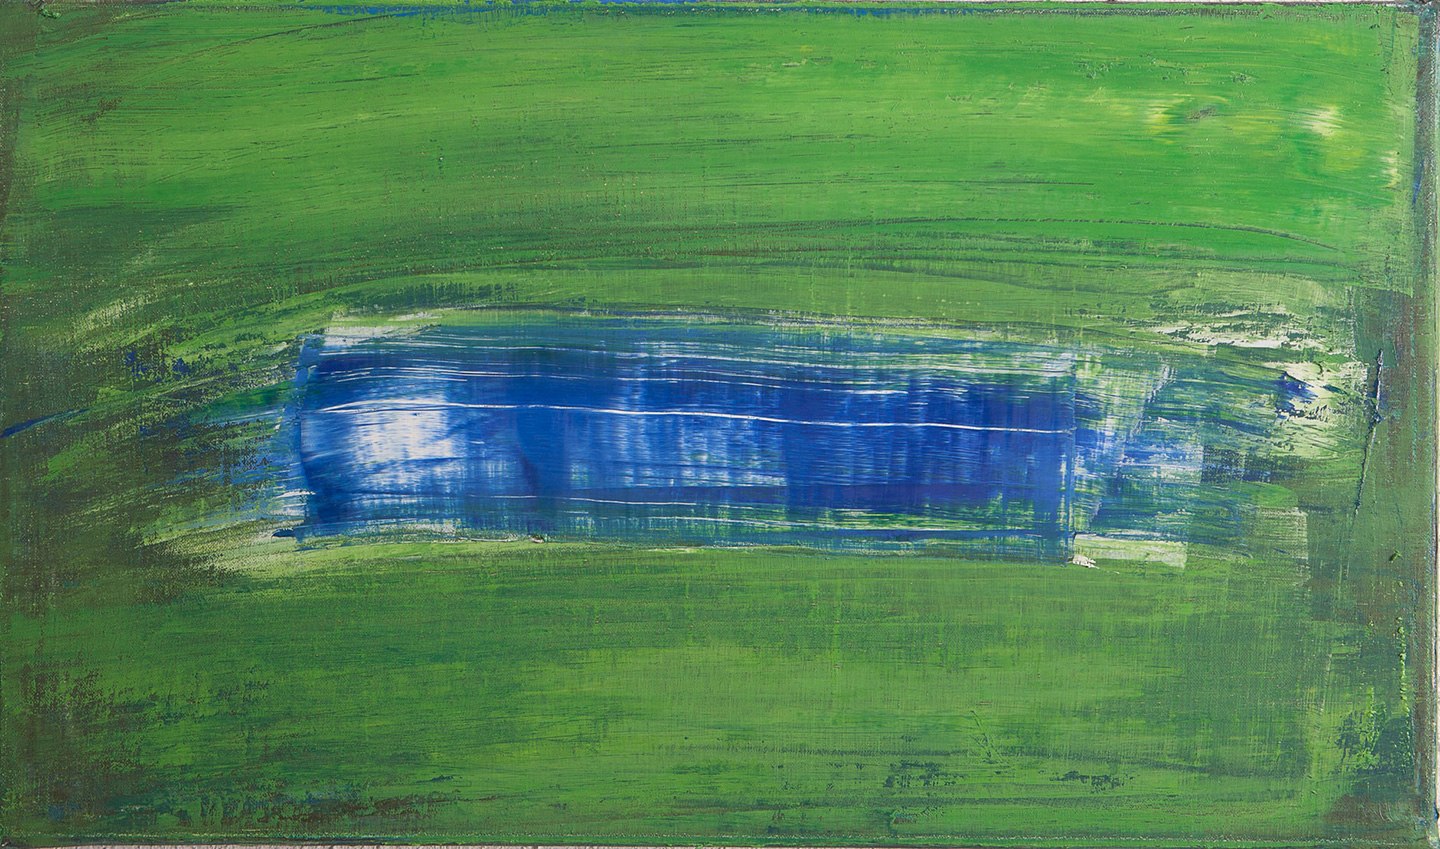 Sean McSweeney - 'Blue Pool' - 36 x 61